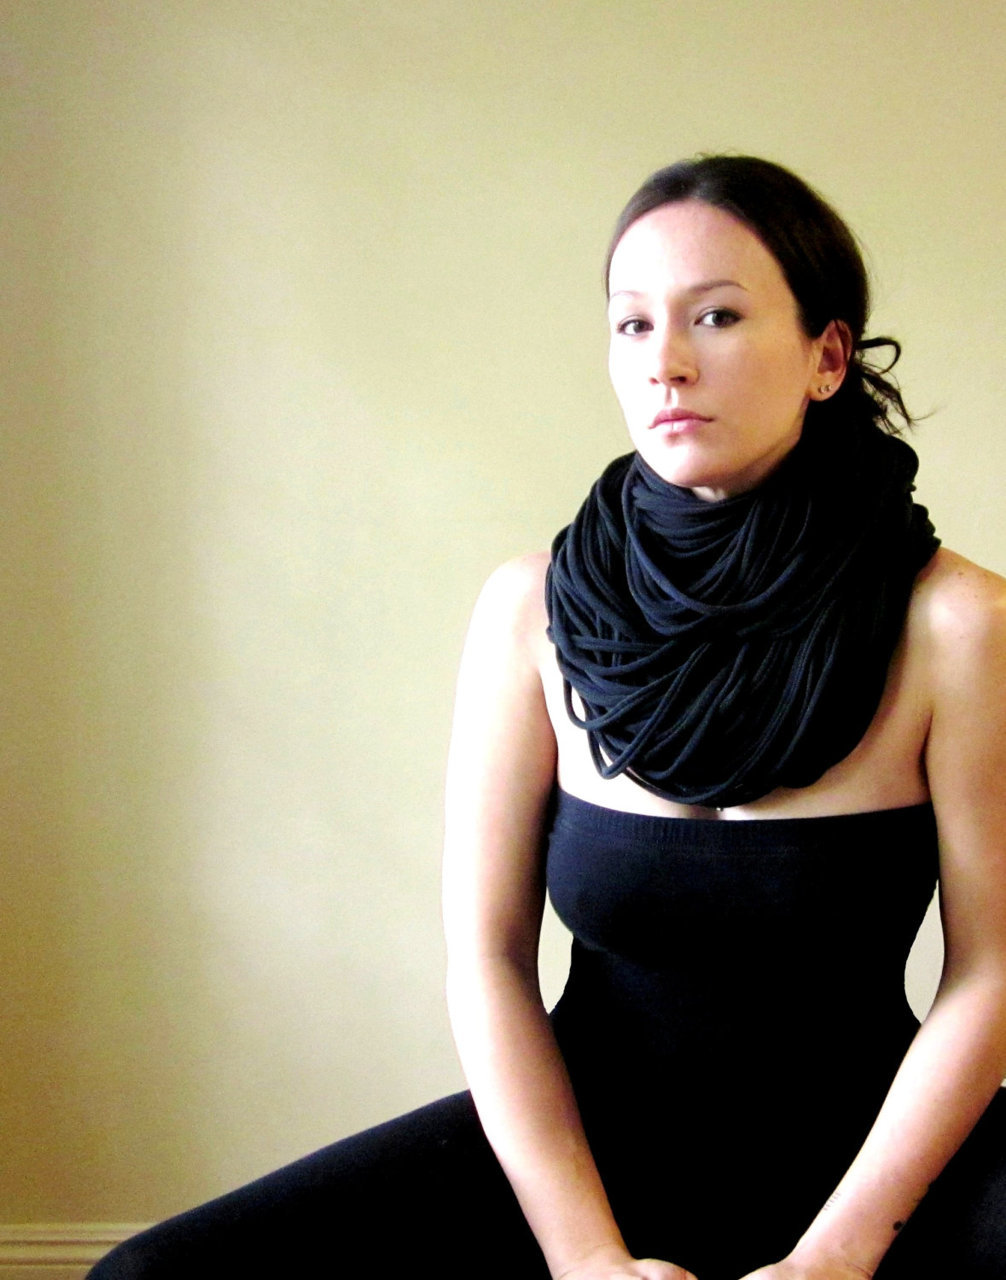 EcoShag | THE SUPER CHUNKY cotton jersey scarf in black It's all about neck pieces for me … this one is nice and dramatic.